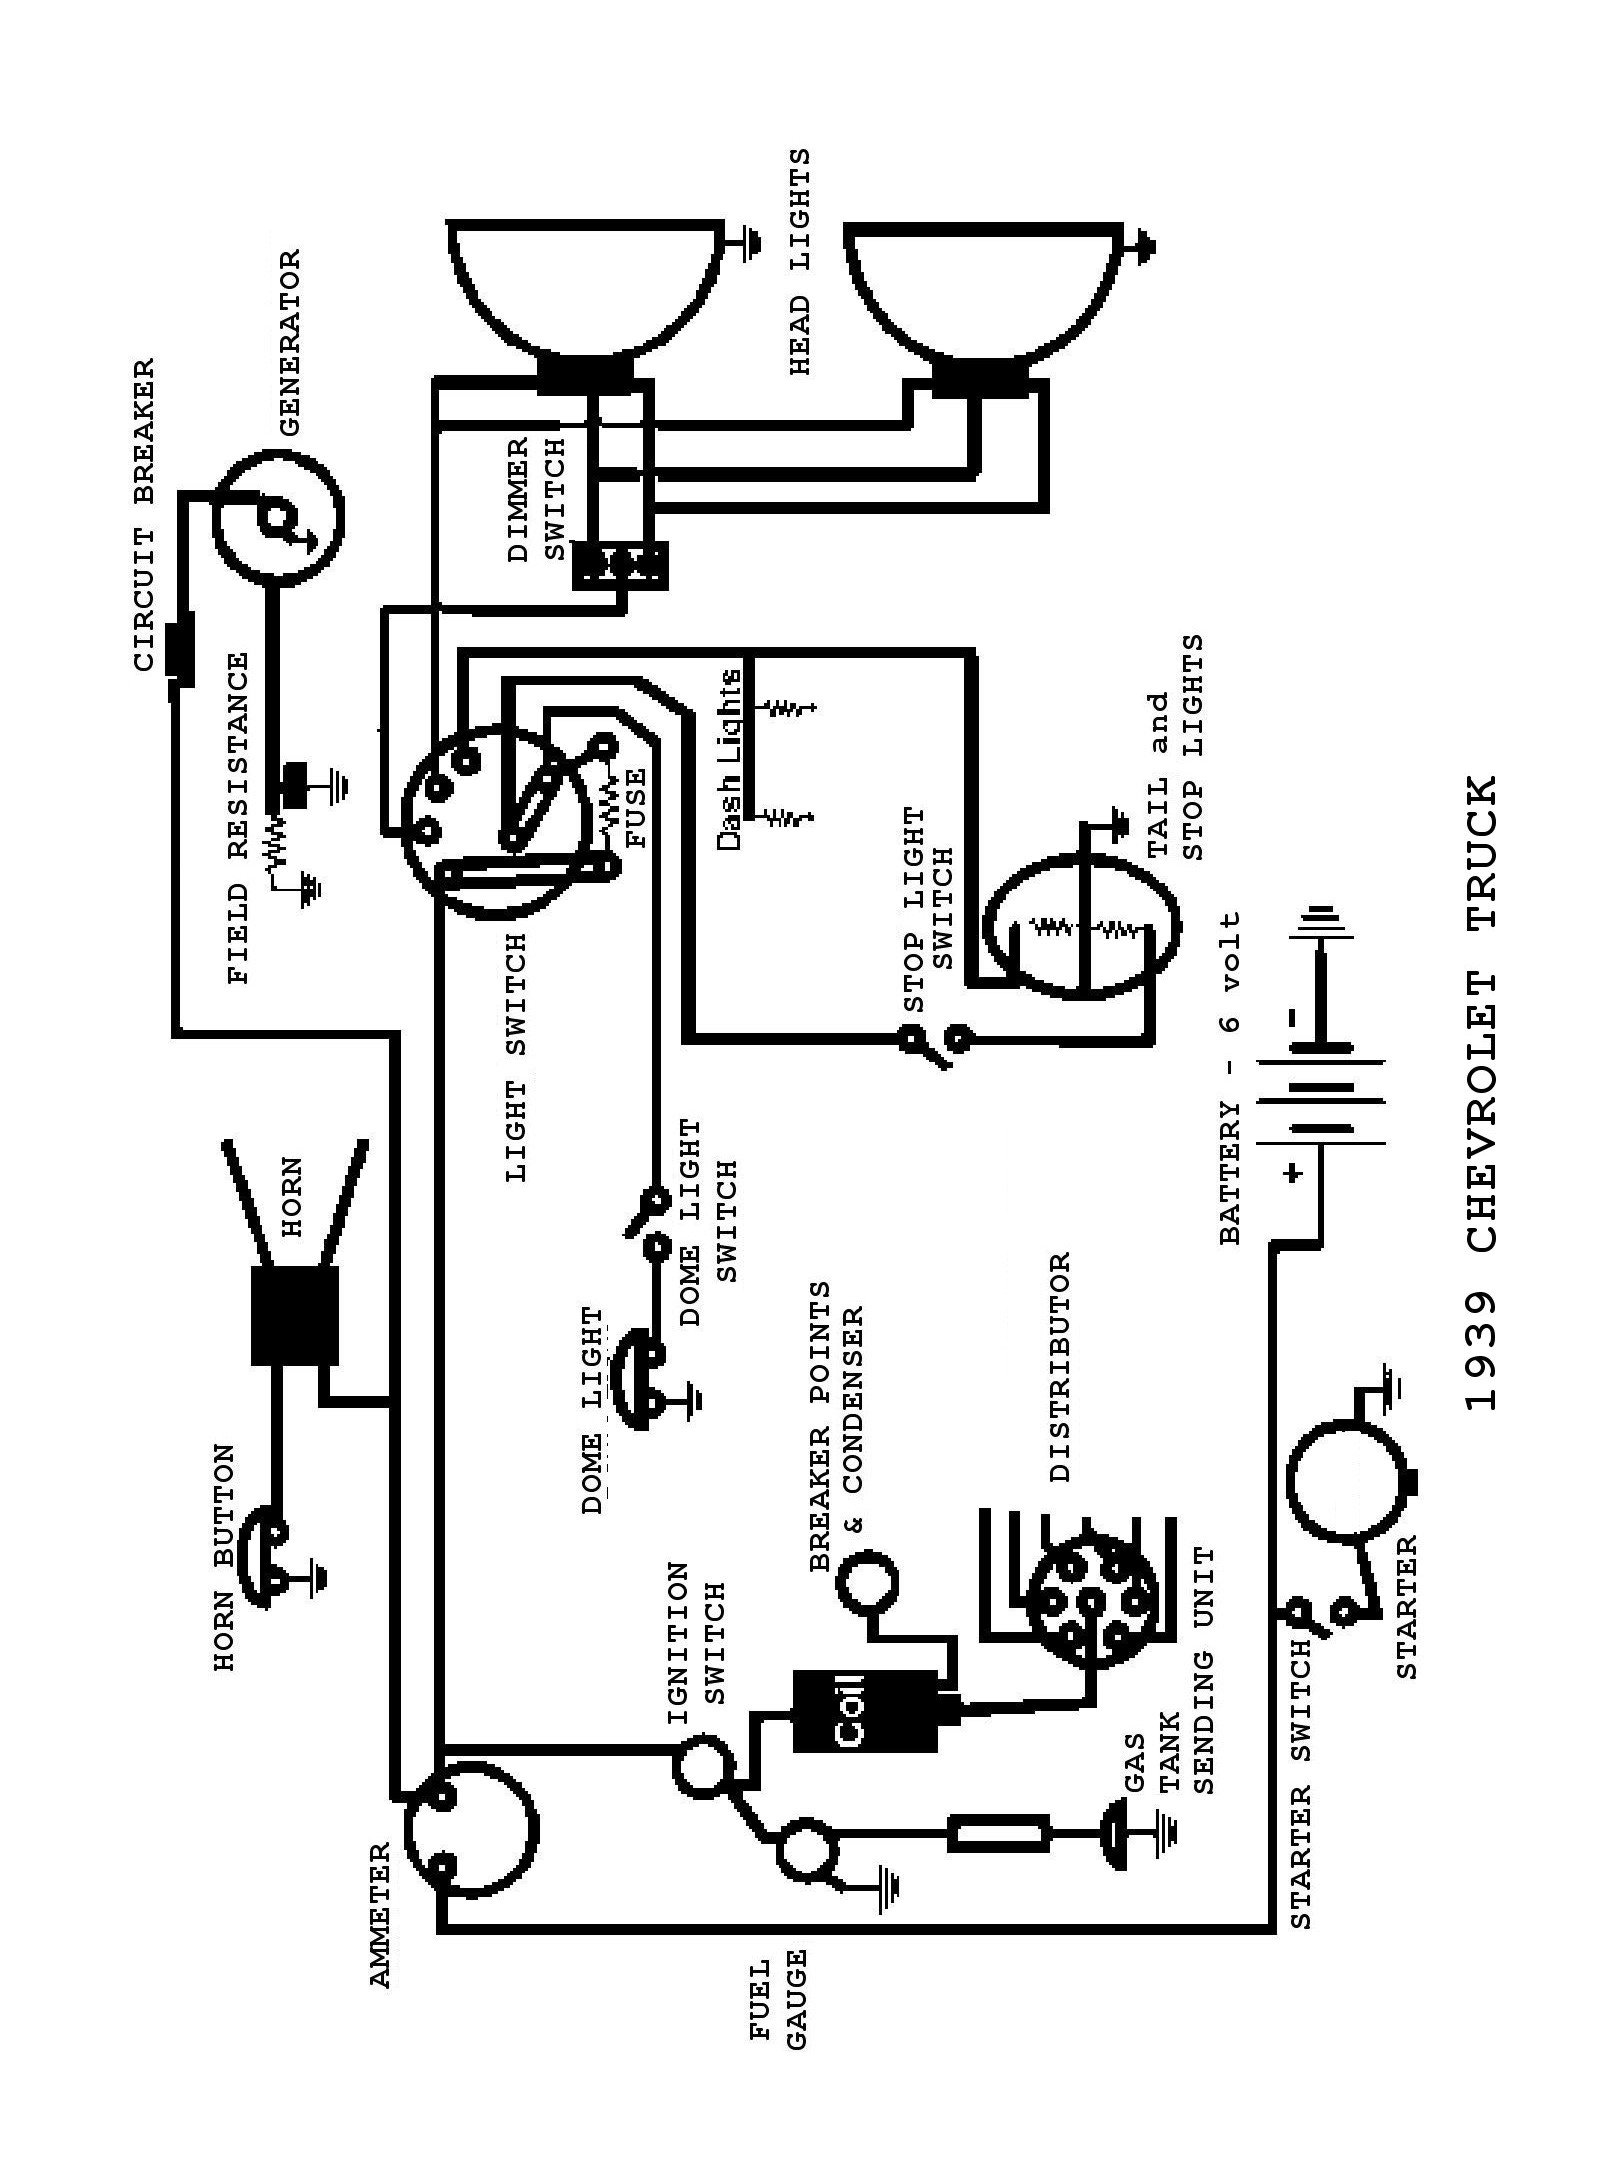 hight resolution of 2001 international 4700 headlight wiring diagram wiring library rh 81 evitta de 2001 international 4700 alternator wiring diagram 2001 4700 international